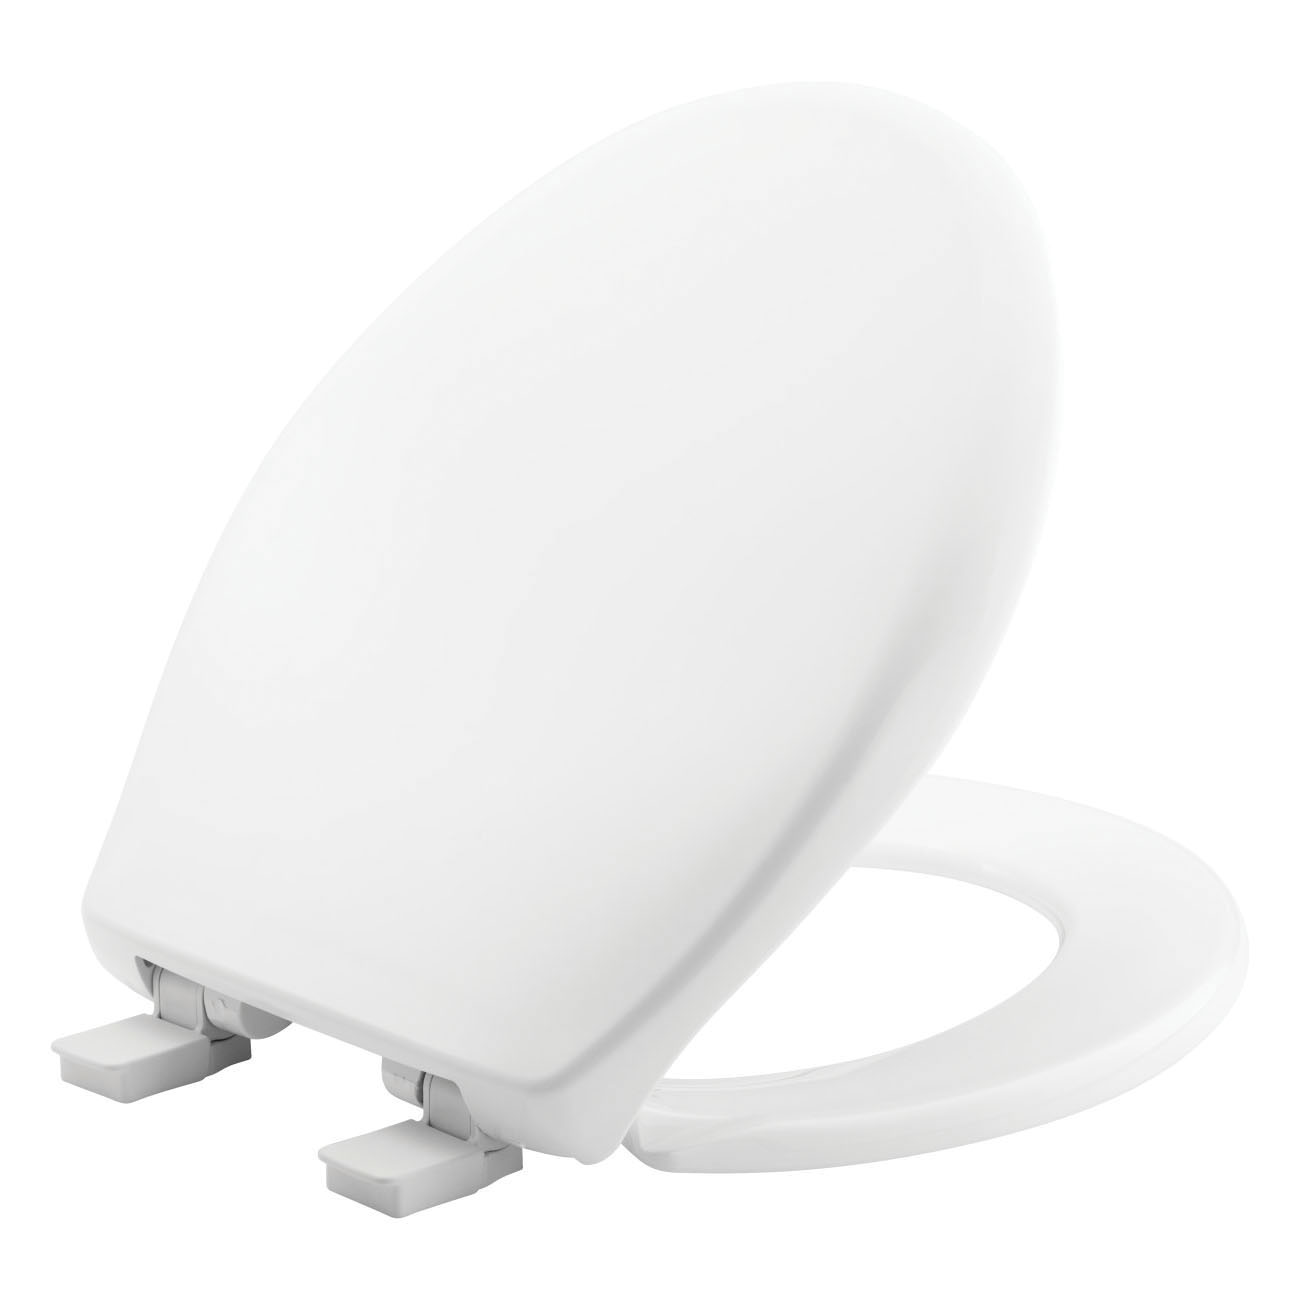 Church® 300E4 000 Toilet Seat With Cover, AFFINITY ™, Round Bowl, Closed Front, Plastic, White, Adjustable Hinge, Domestic